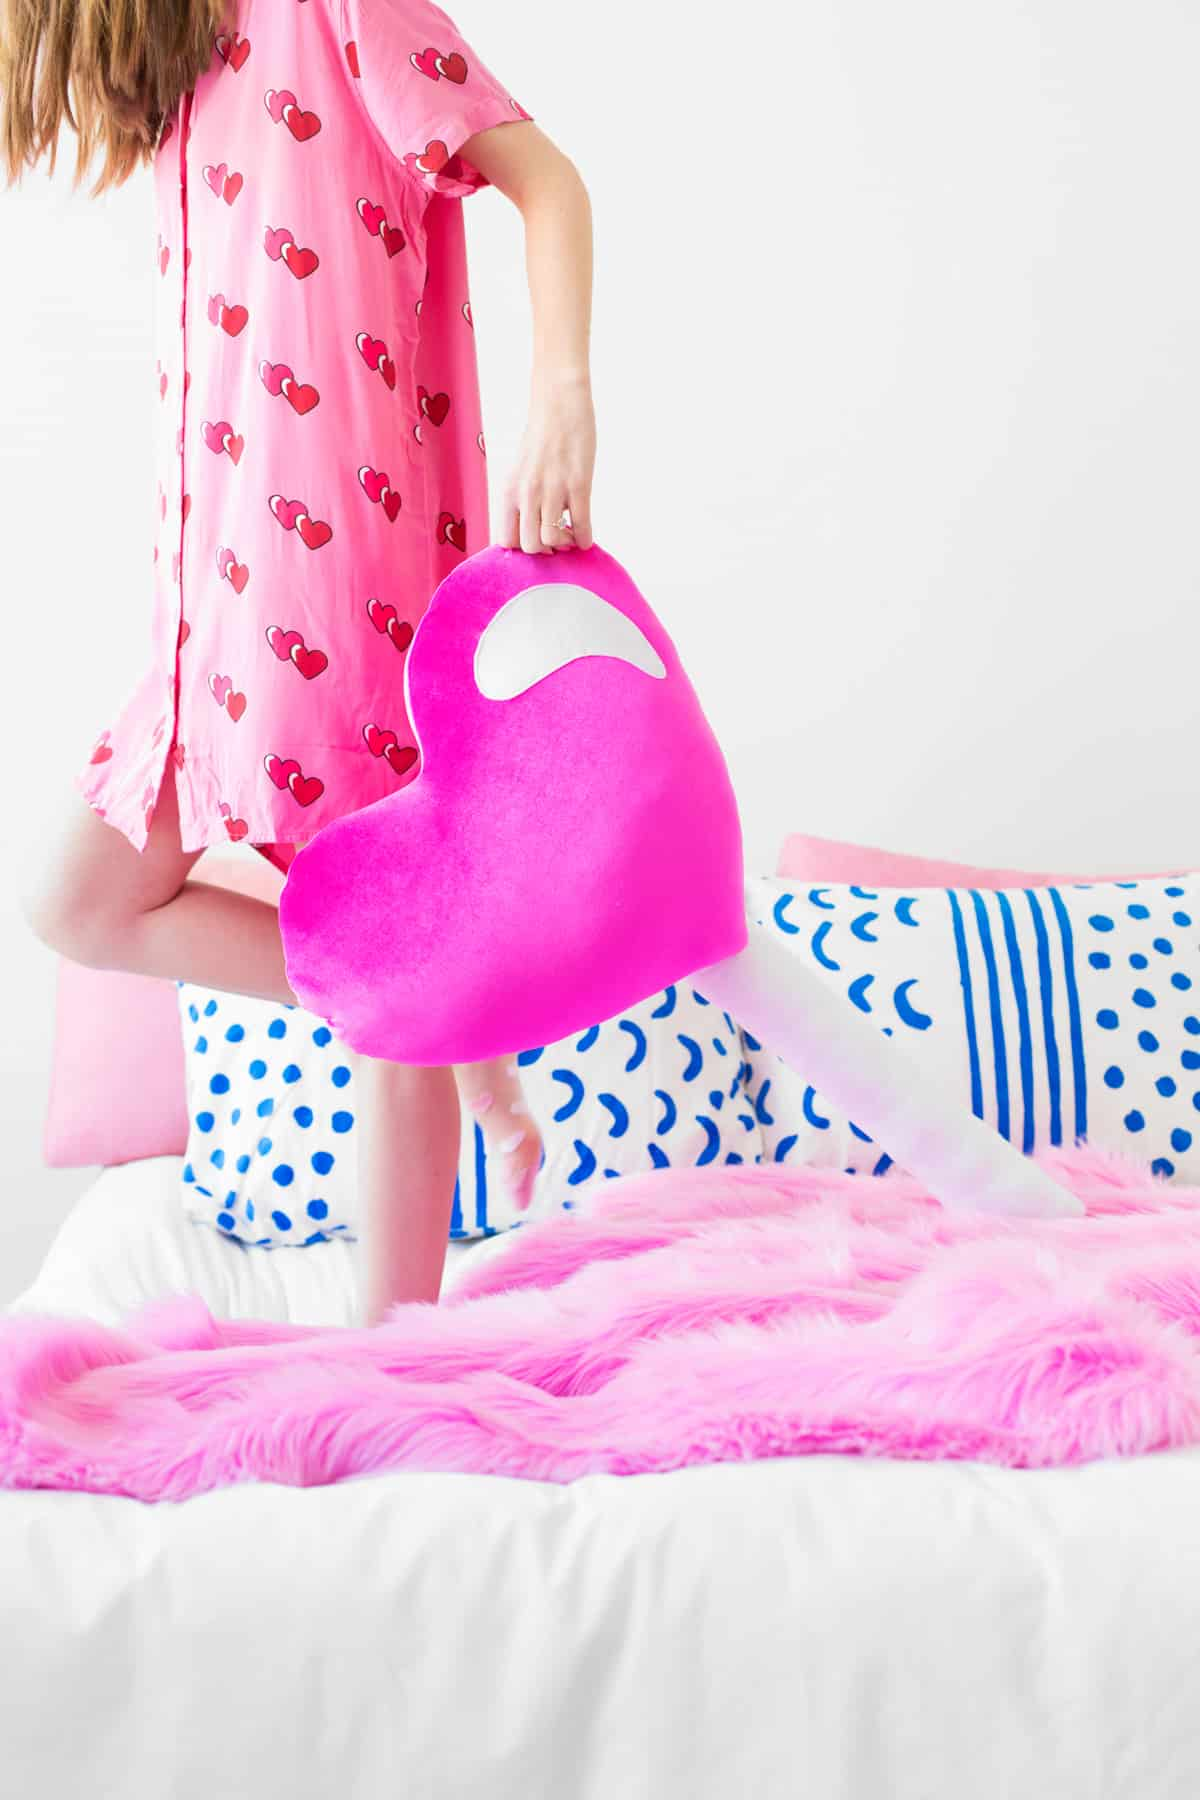 DIY LOLLIPOP PILLOW